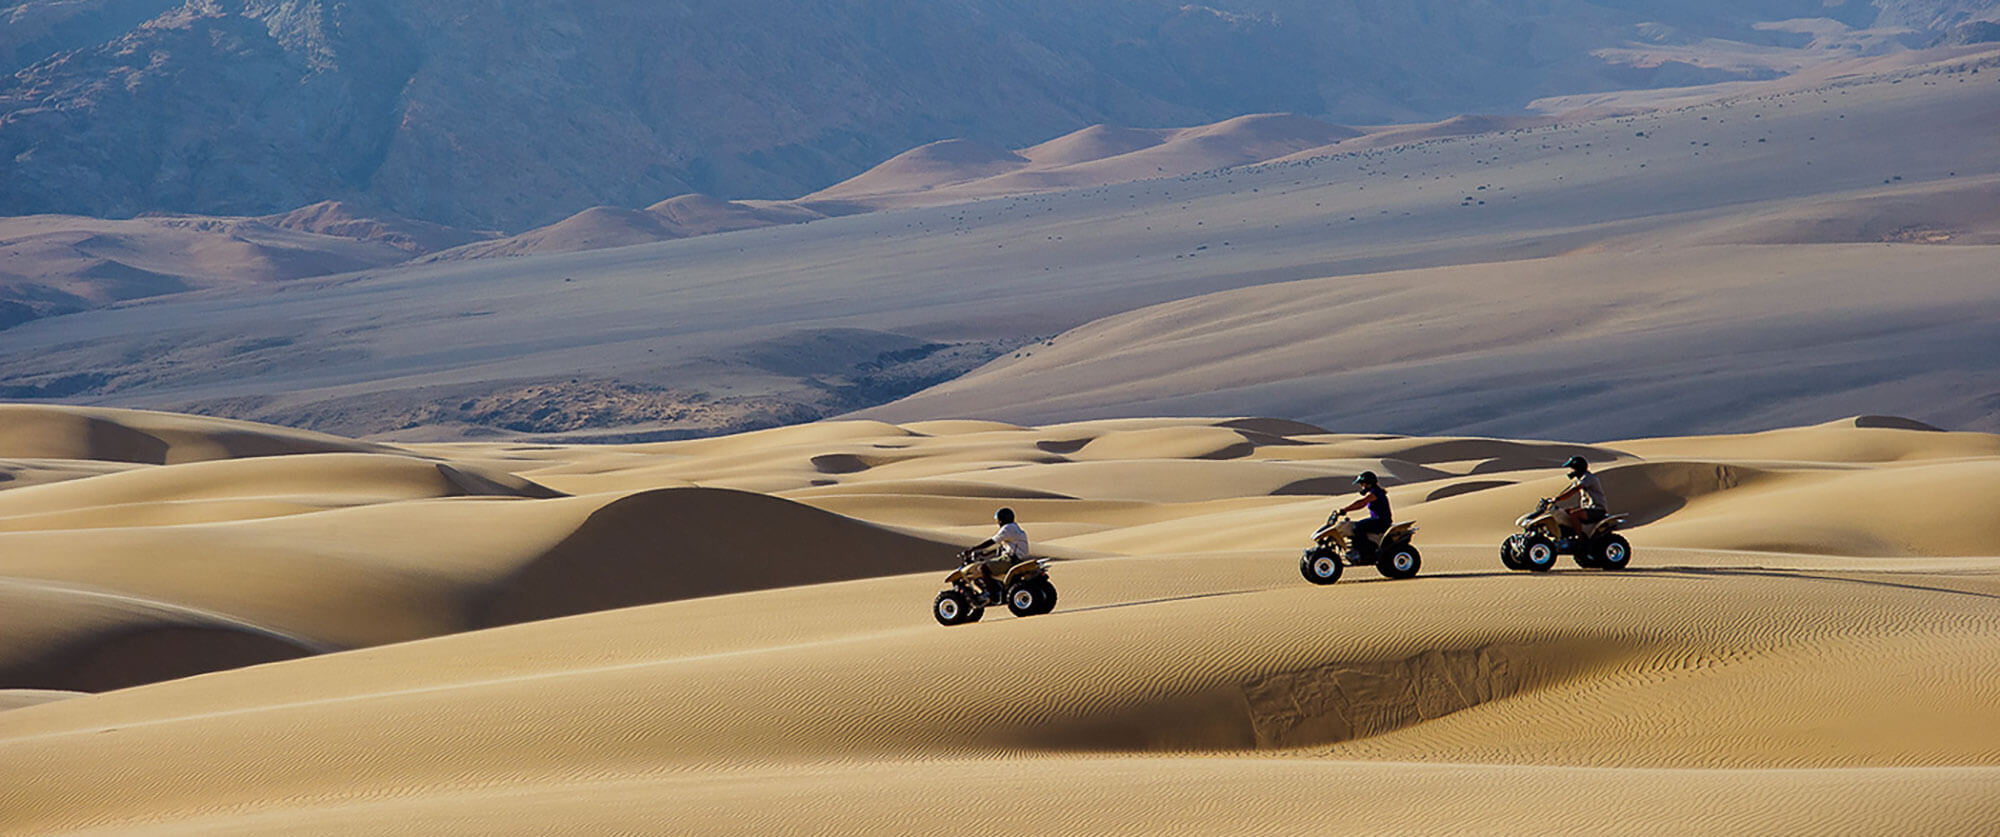 Quad biking in the Namib Desert, Namibia